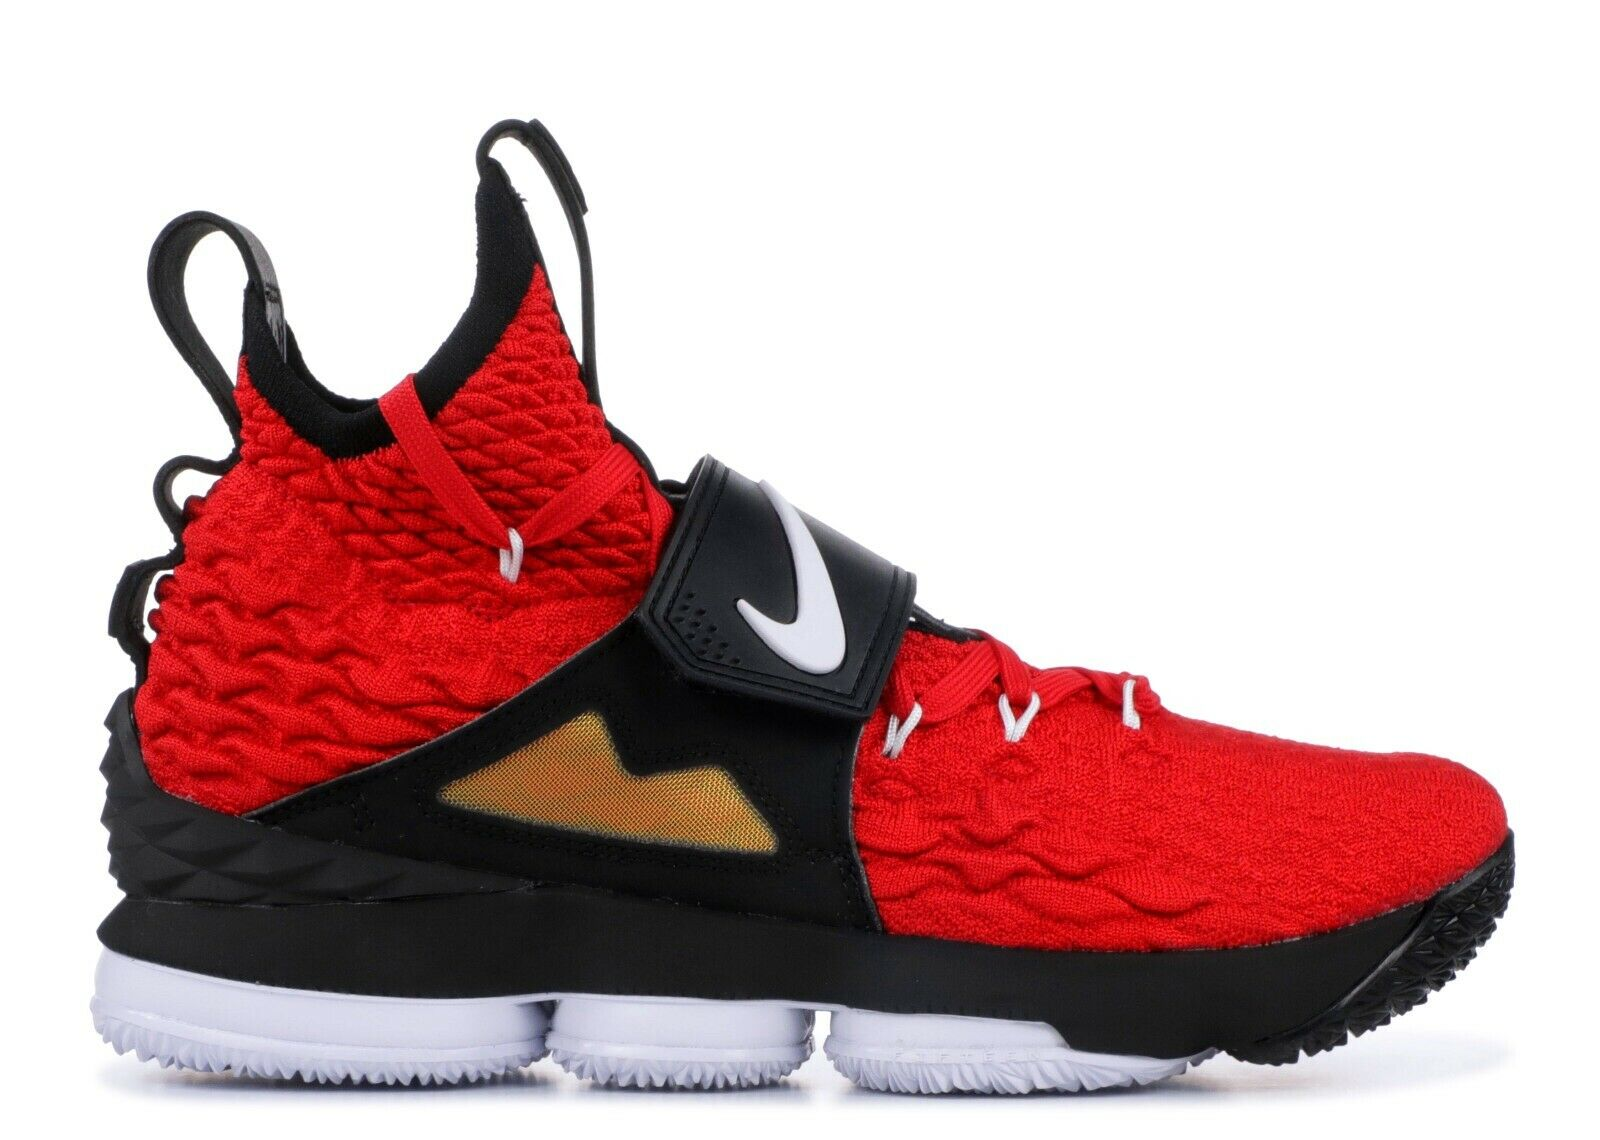 81973289328 Nike Lebron 15 XV Prime Diamond Turf Deon Sanders Red AO9144 600 Men's Sz  8.5